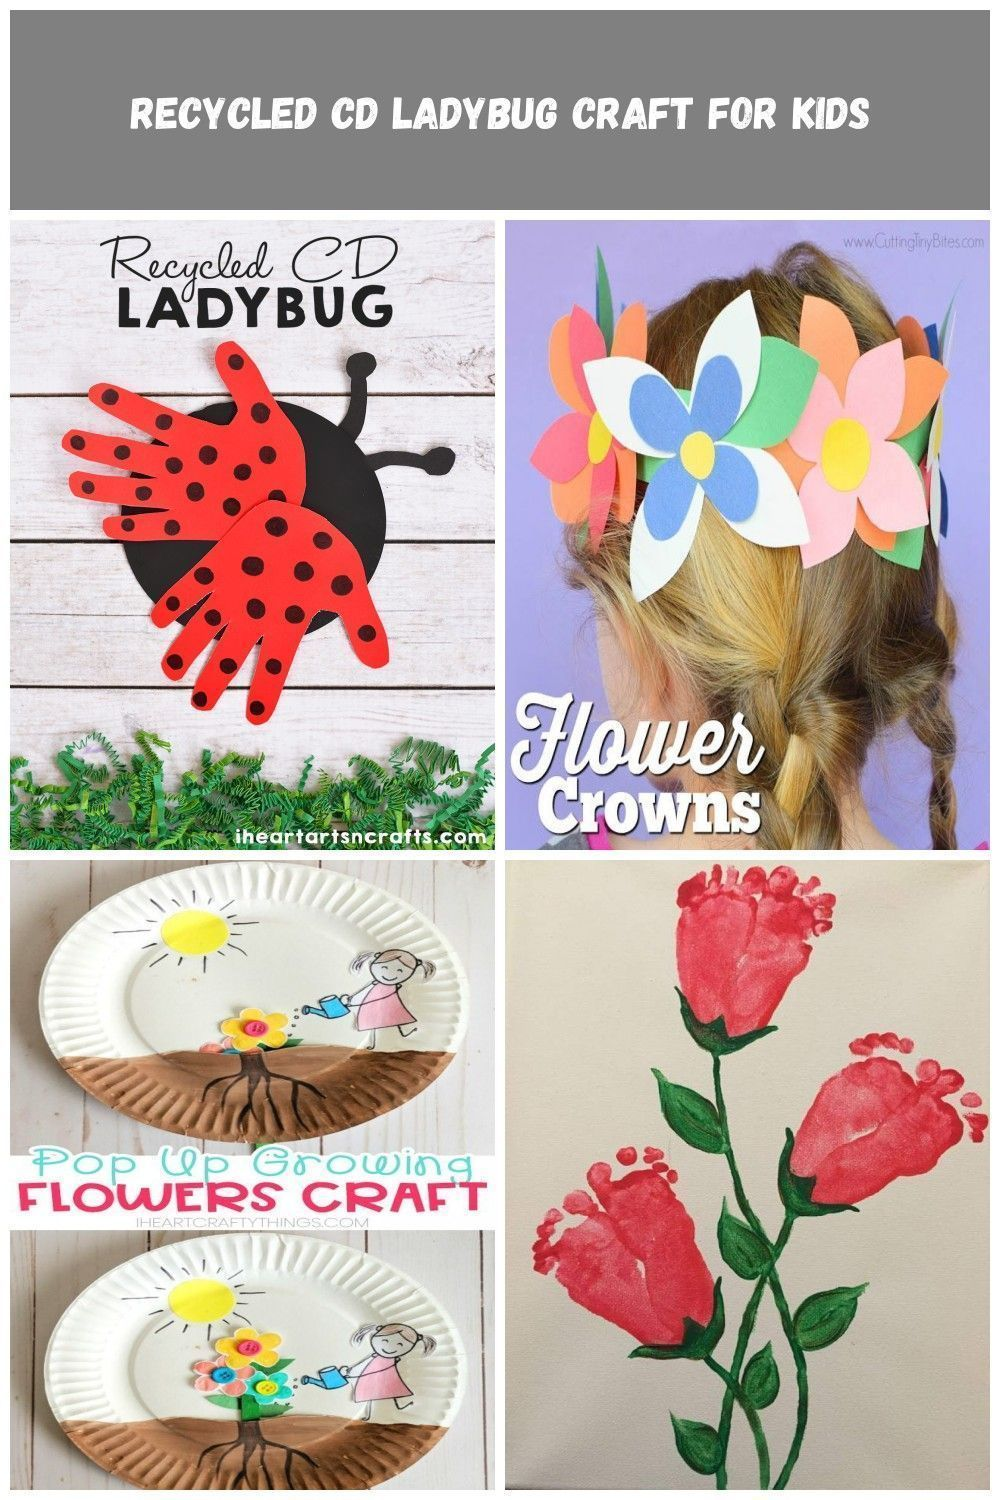 Recycled CD Ladybug Craft For Kids #spring crafts Recycled CD Ladybug Craft For Kids #recycledcd Recycled CD Ladybug Craft For Kids #spring crafts Recycled CD Ladybug Craft For Kids #recycledcd Recycled CD Ladybug Craft For Kids #spring crafts Recycled CD Ladybug Craft For Kids #recycledcd Recycled CD Ladybug Craft For Kids #spring crafts Recycled CD Ladybug Craft For Kids #recycledcd Recycled CD Ladybug Craft For Kids #spring crafts Recycled CD Ladybug Craft For Kids #recycledcd Recycled CD Lad #recycledcd